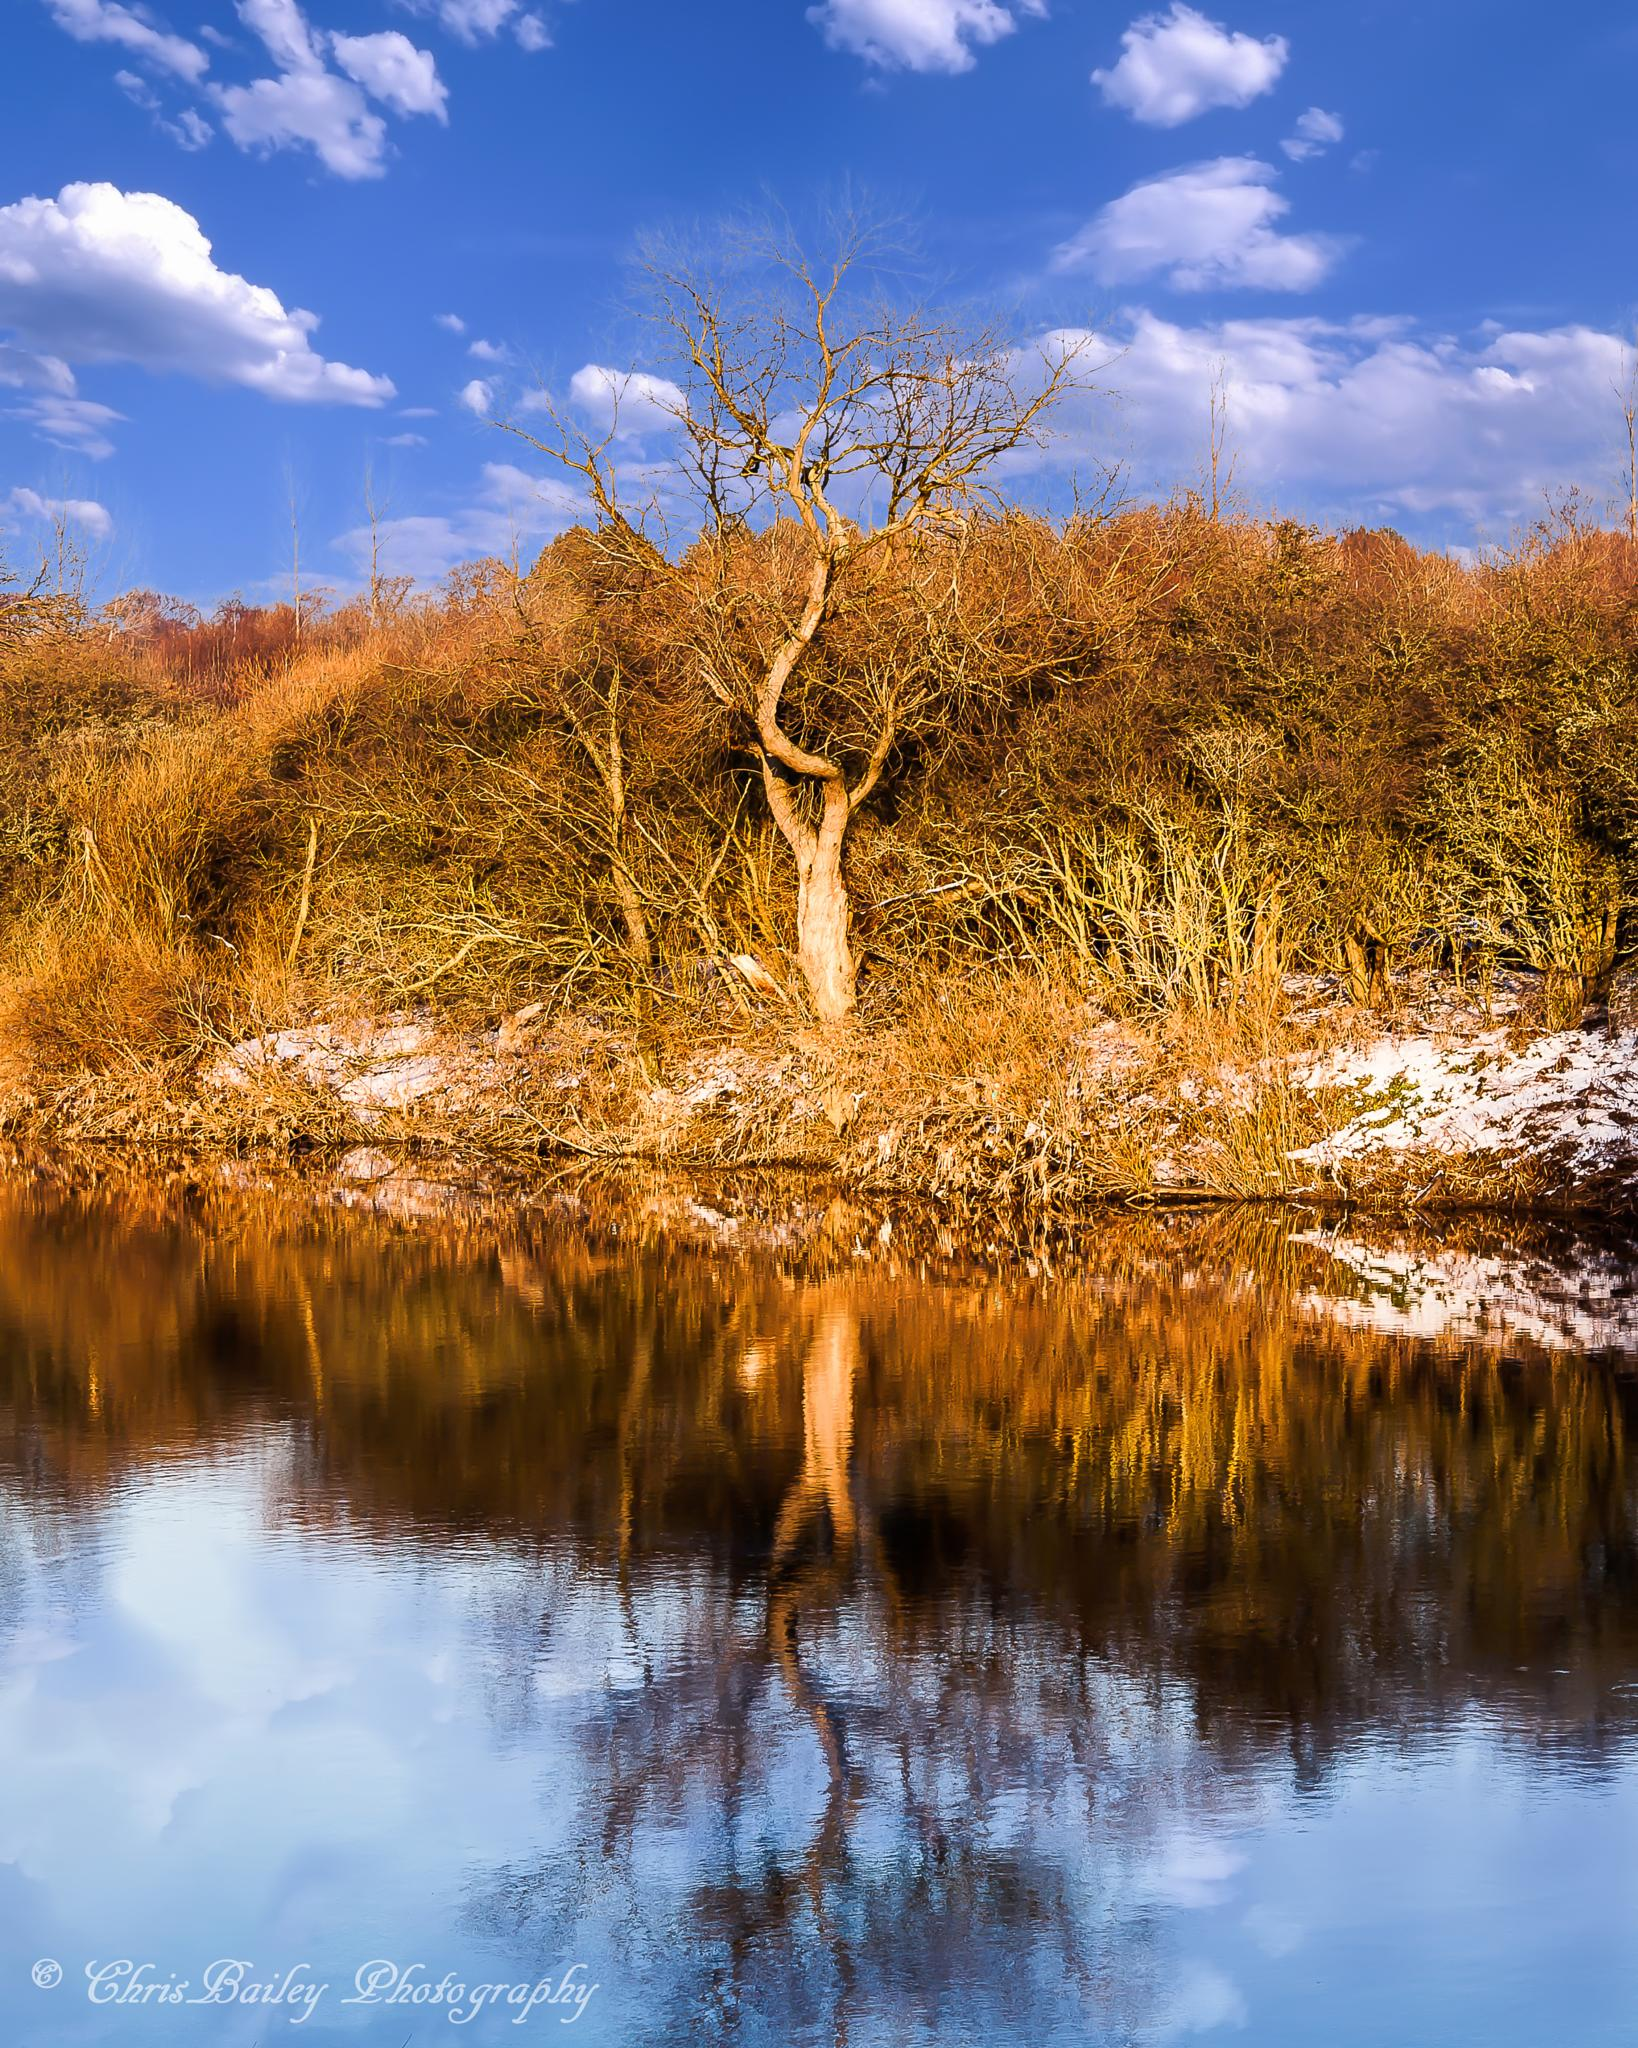 Cold Reflections - County Durham UK by Chris Bailey